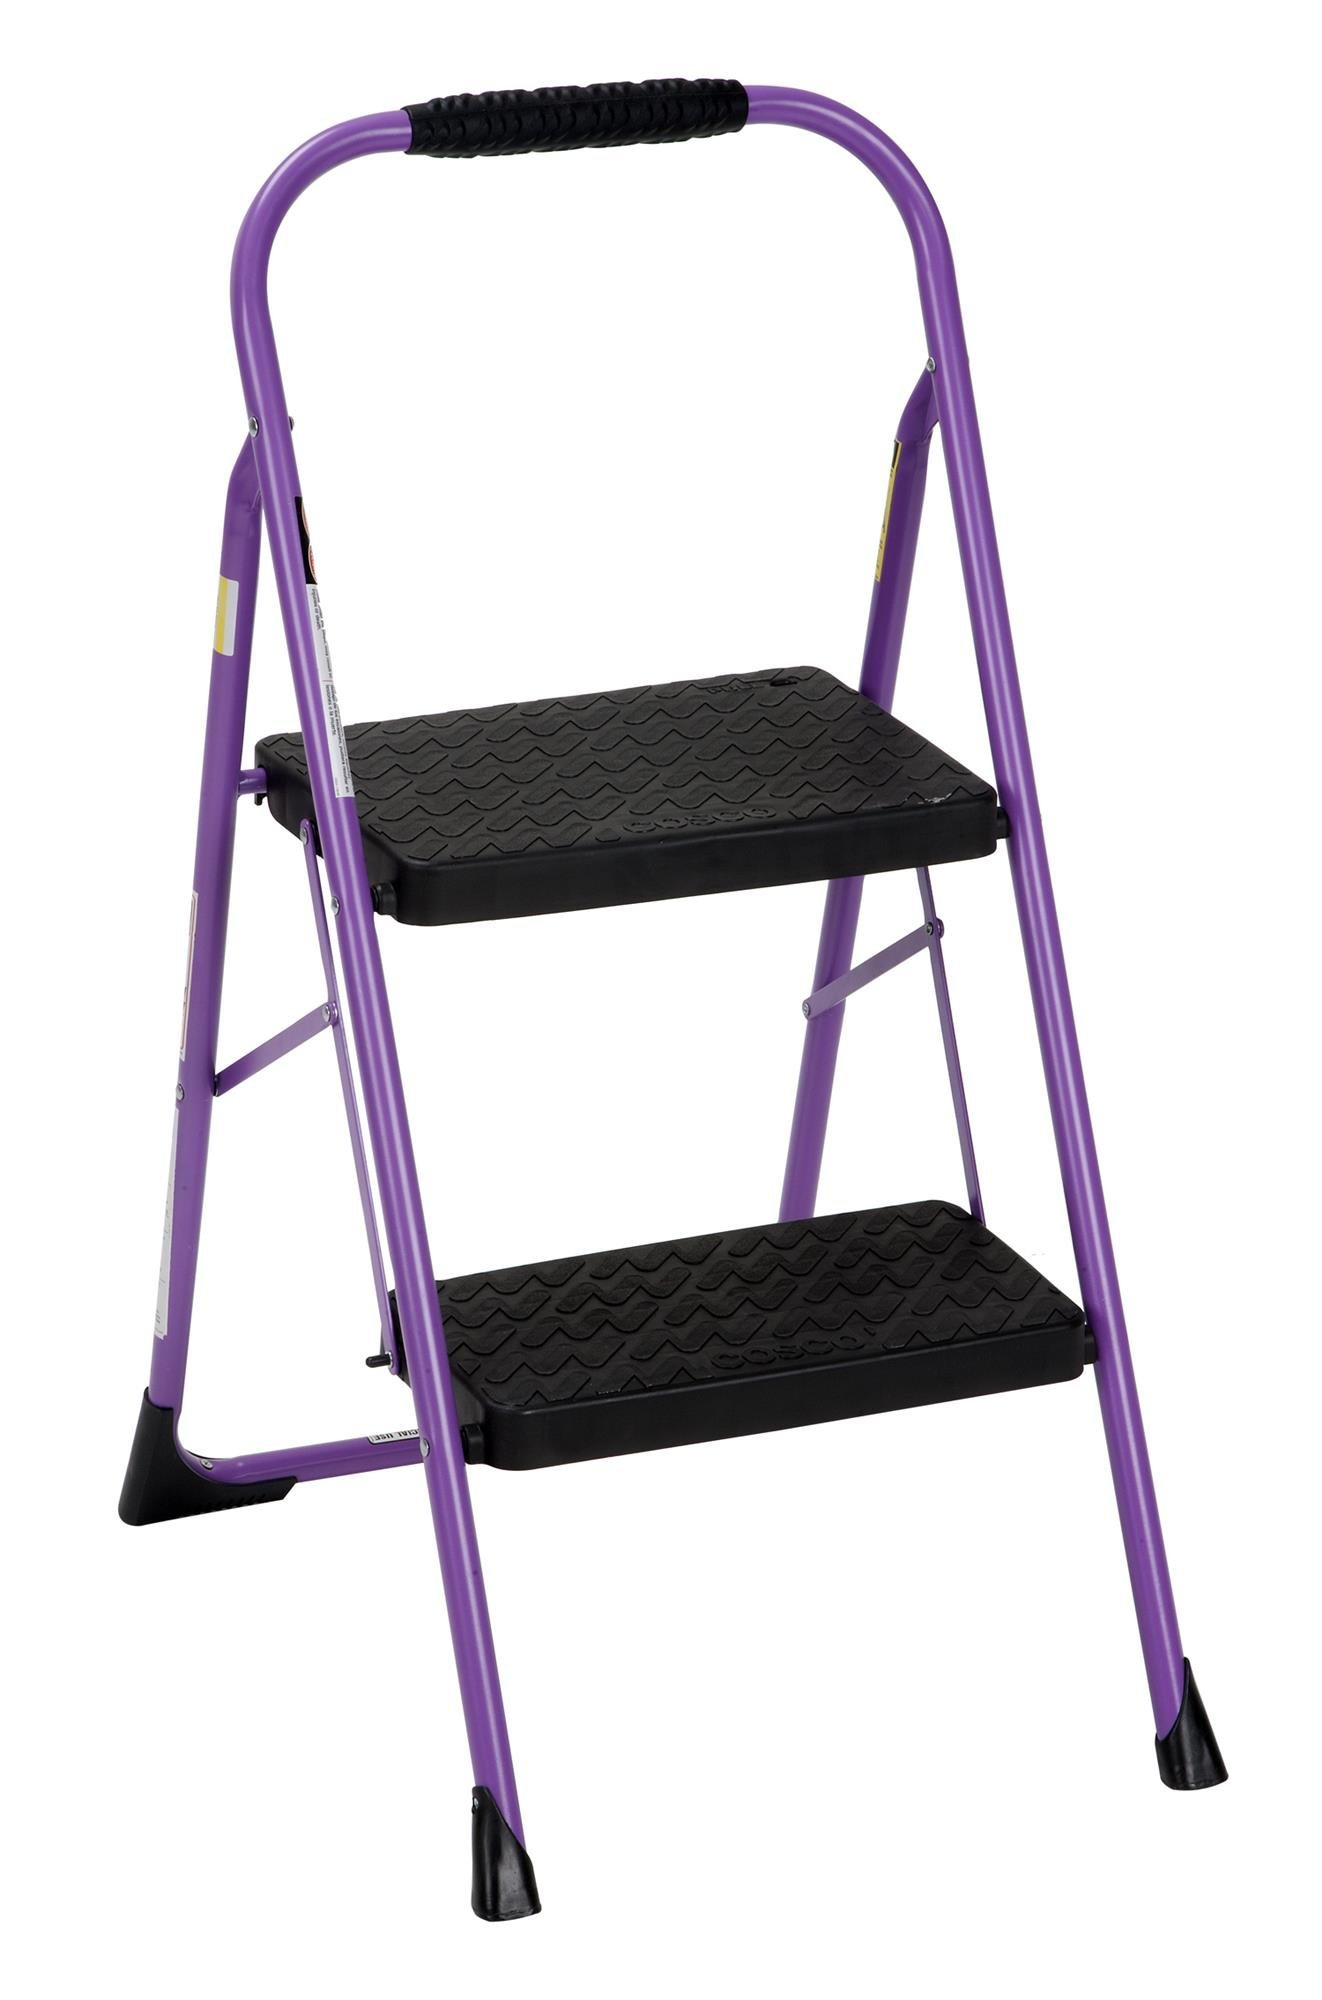 Cosco Two Step Big Step Folding Step Stool with Rubber Hand Grip, Purple (Renewed)